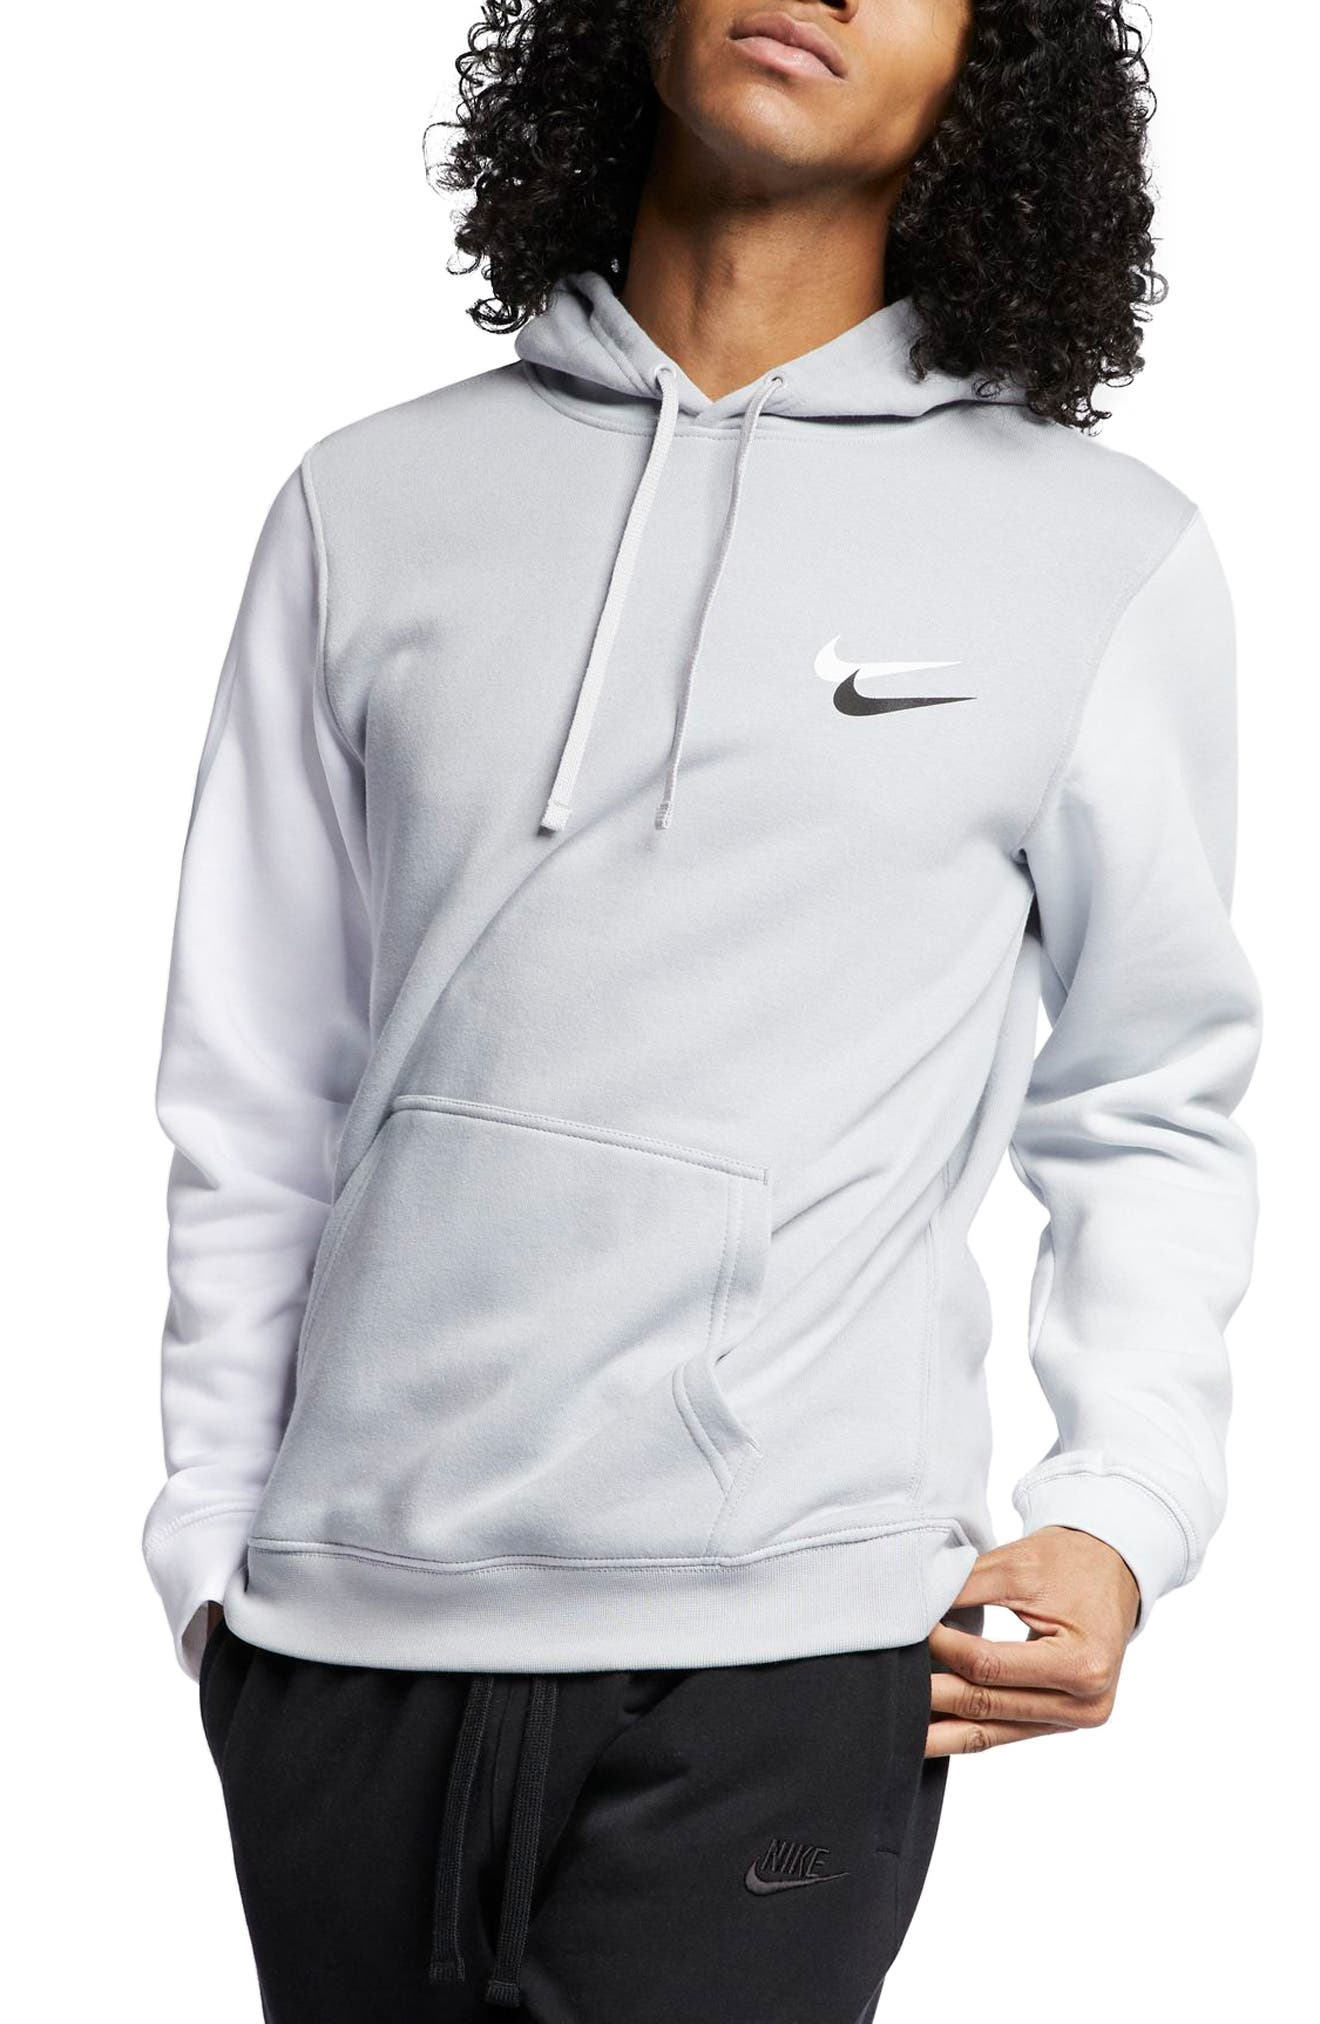 NIKE Sportswear City Brights Club Men's Pullover Hoodie, Main, color, WOLF GREY/ WHITE/ PLATINUM